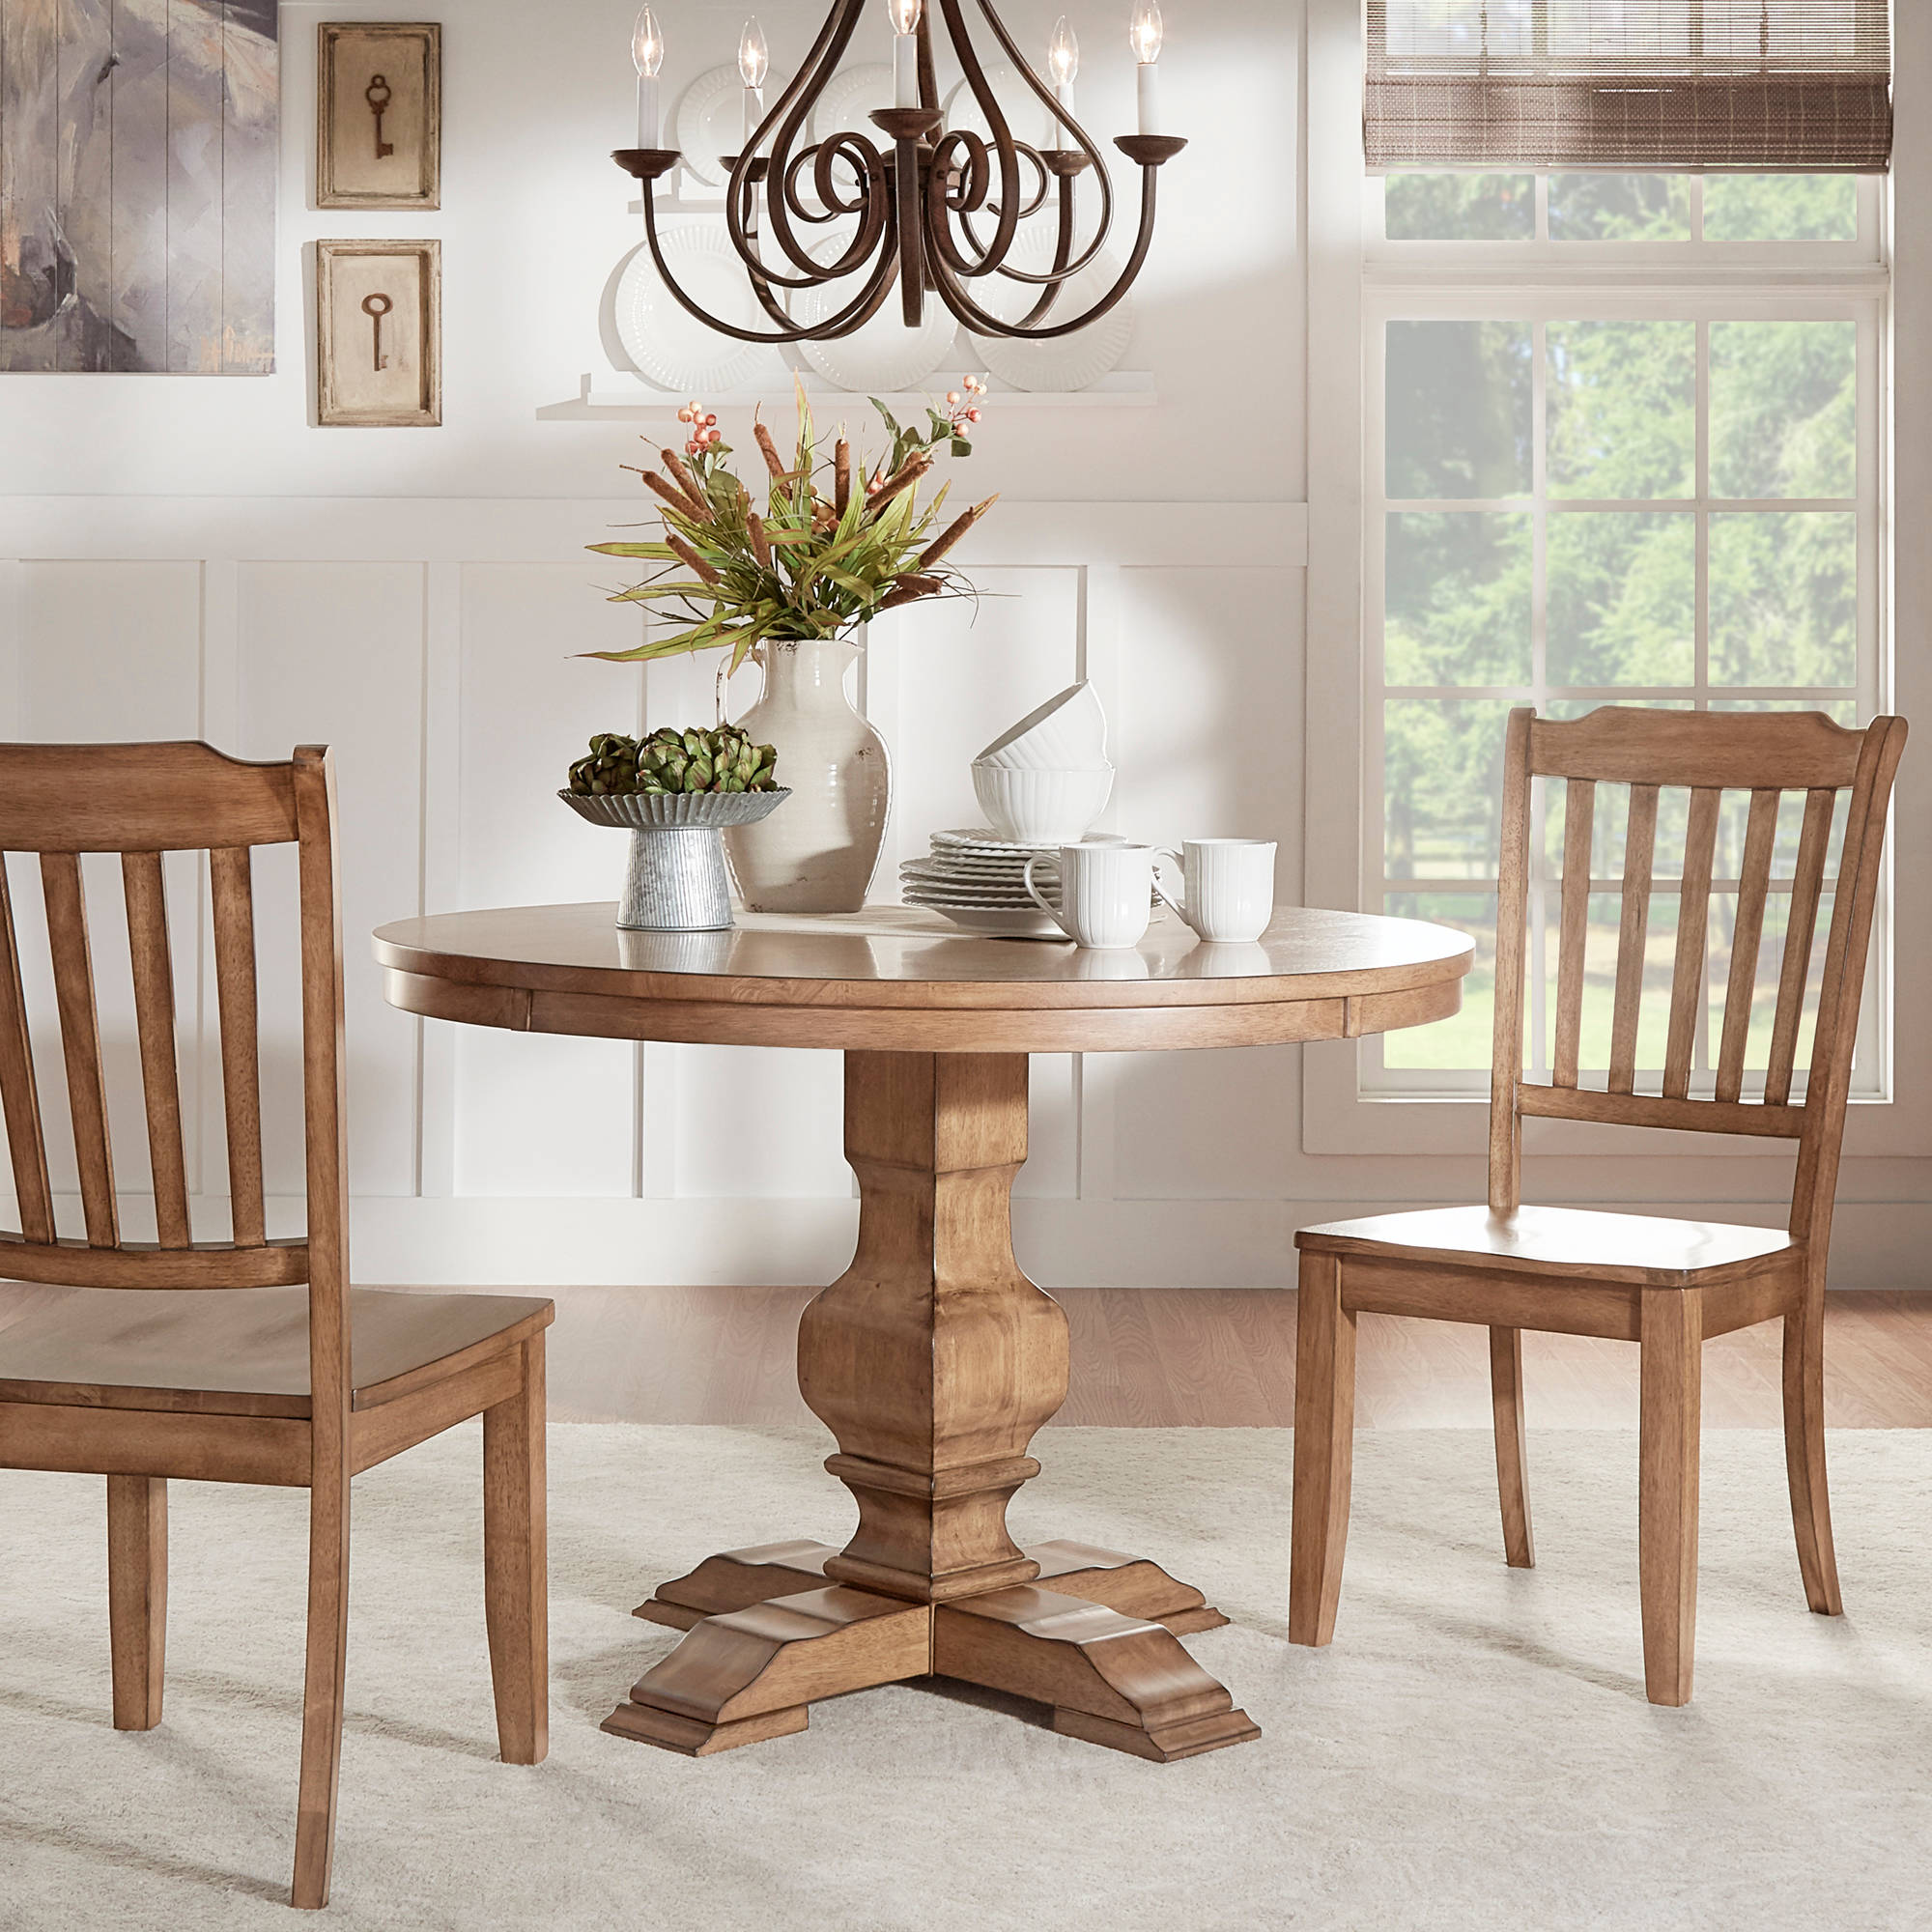 "Weston Home 45"" Round Dining Table, Multiple Finishes"